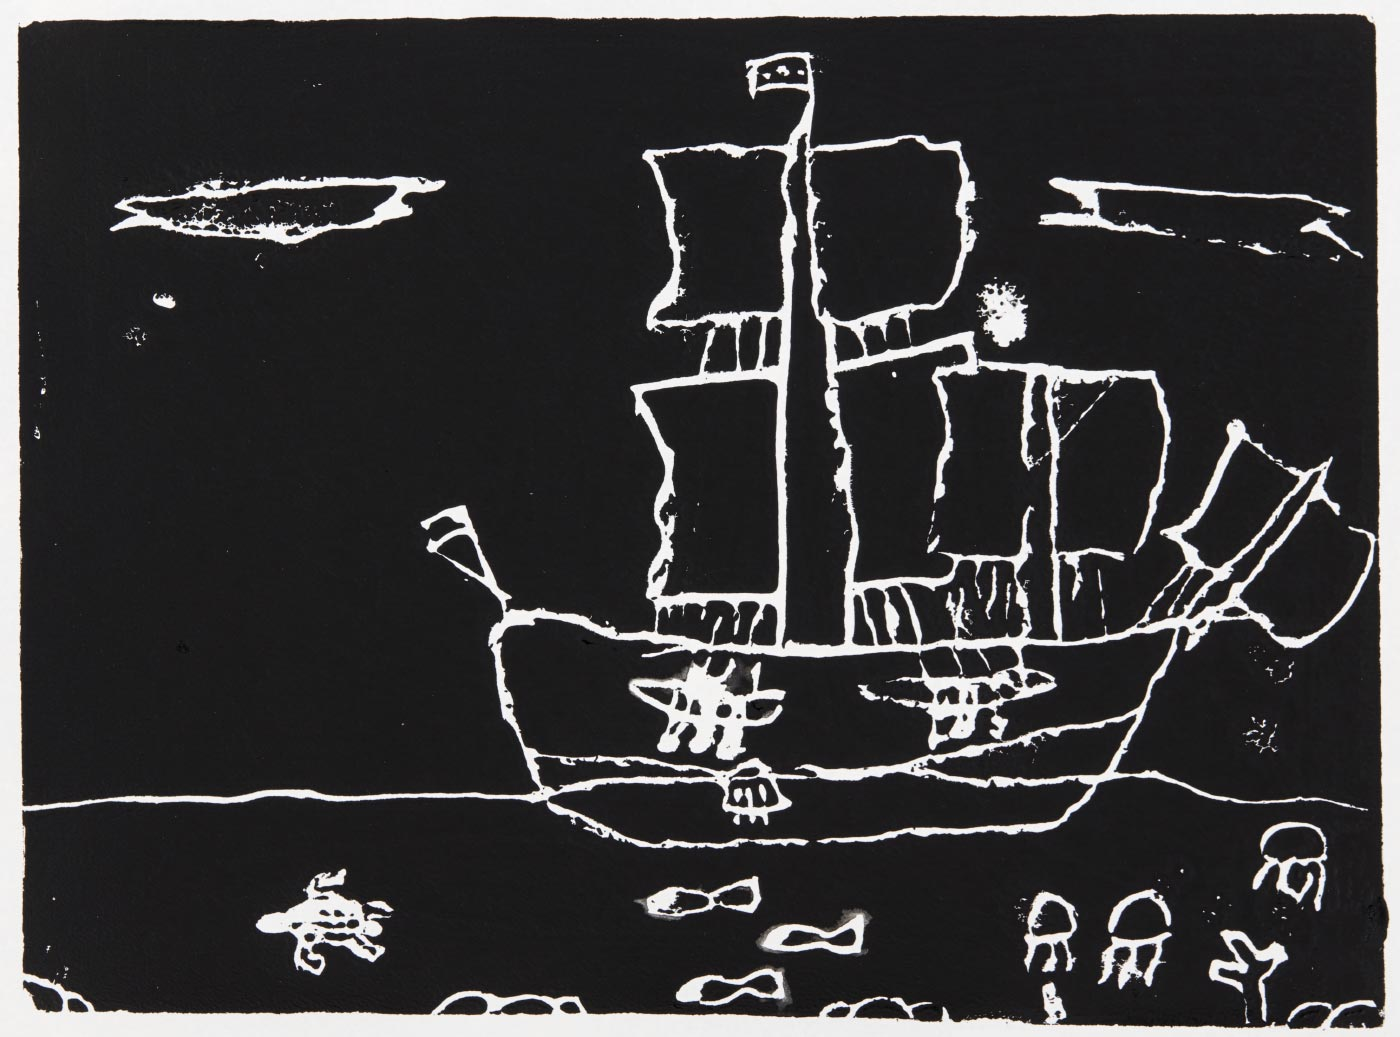 Print, black ink on white paper, depicting a boat, with a turtle, fish, and jellyfish in the water below. Annotated in pencil 'Charlese 2/2/19'. - click to view larger image